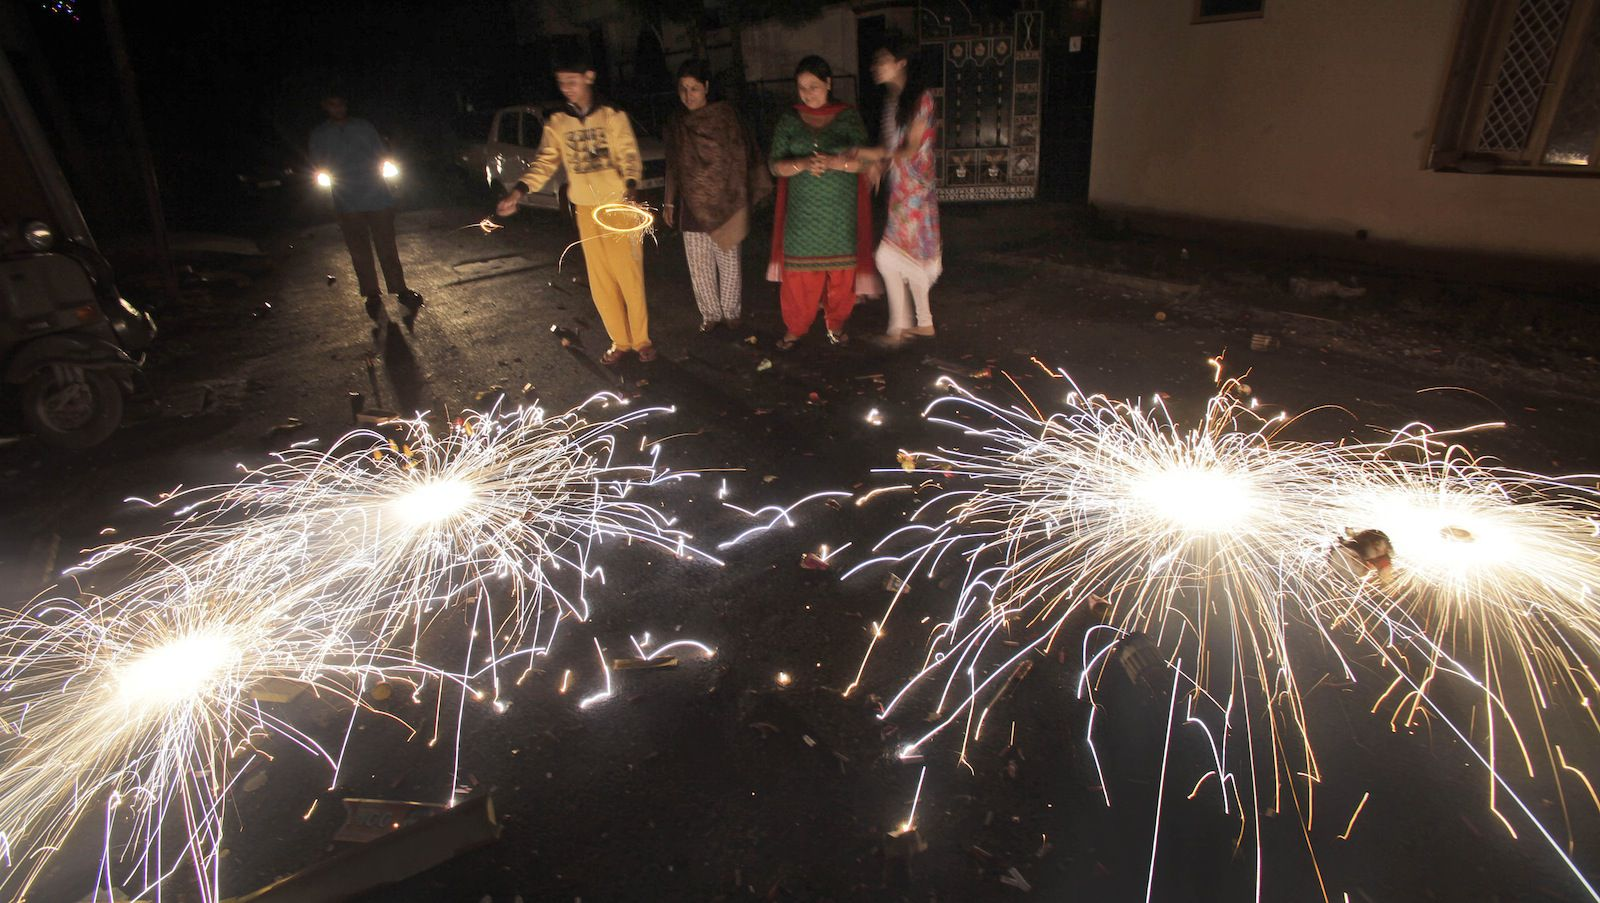 People let off fireworks to celebrate Diwali, the Hindu festival of lights, in Jammu India, Sunday, Nov. 3, 2013. Hindus across the country are celebrating Diwali where people decorate their homes with lights, let off fireworks and  pray to Lakshmi, the goddess of wealth. (AP Photo /Channi Anand)